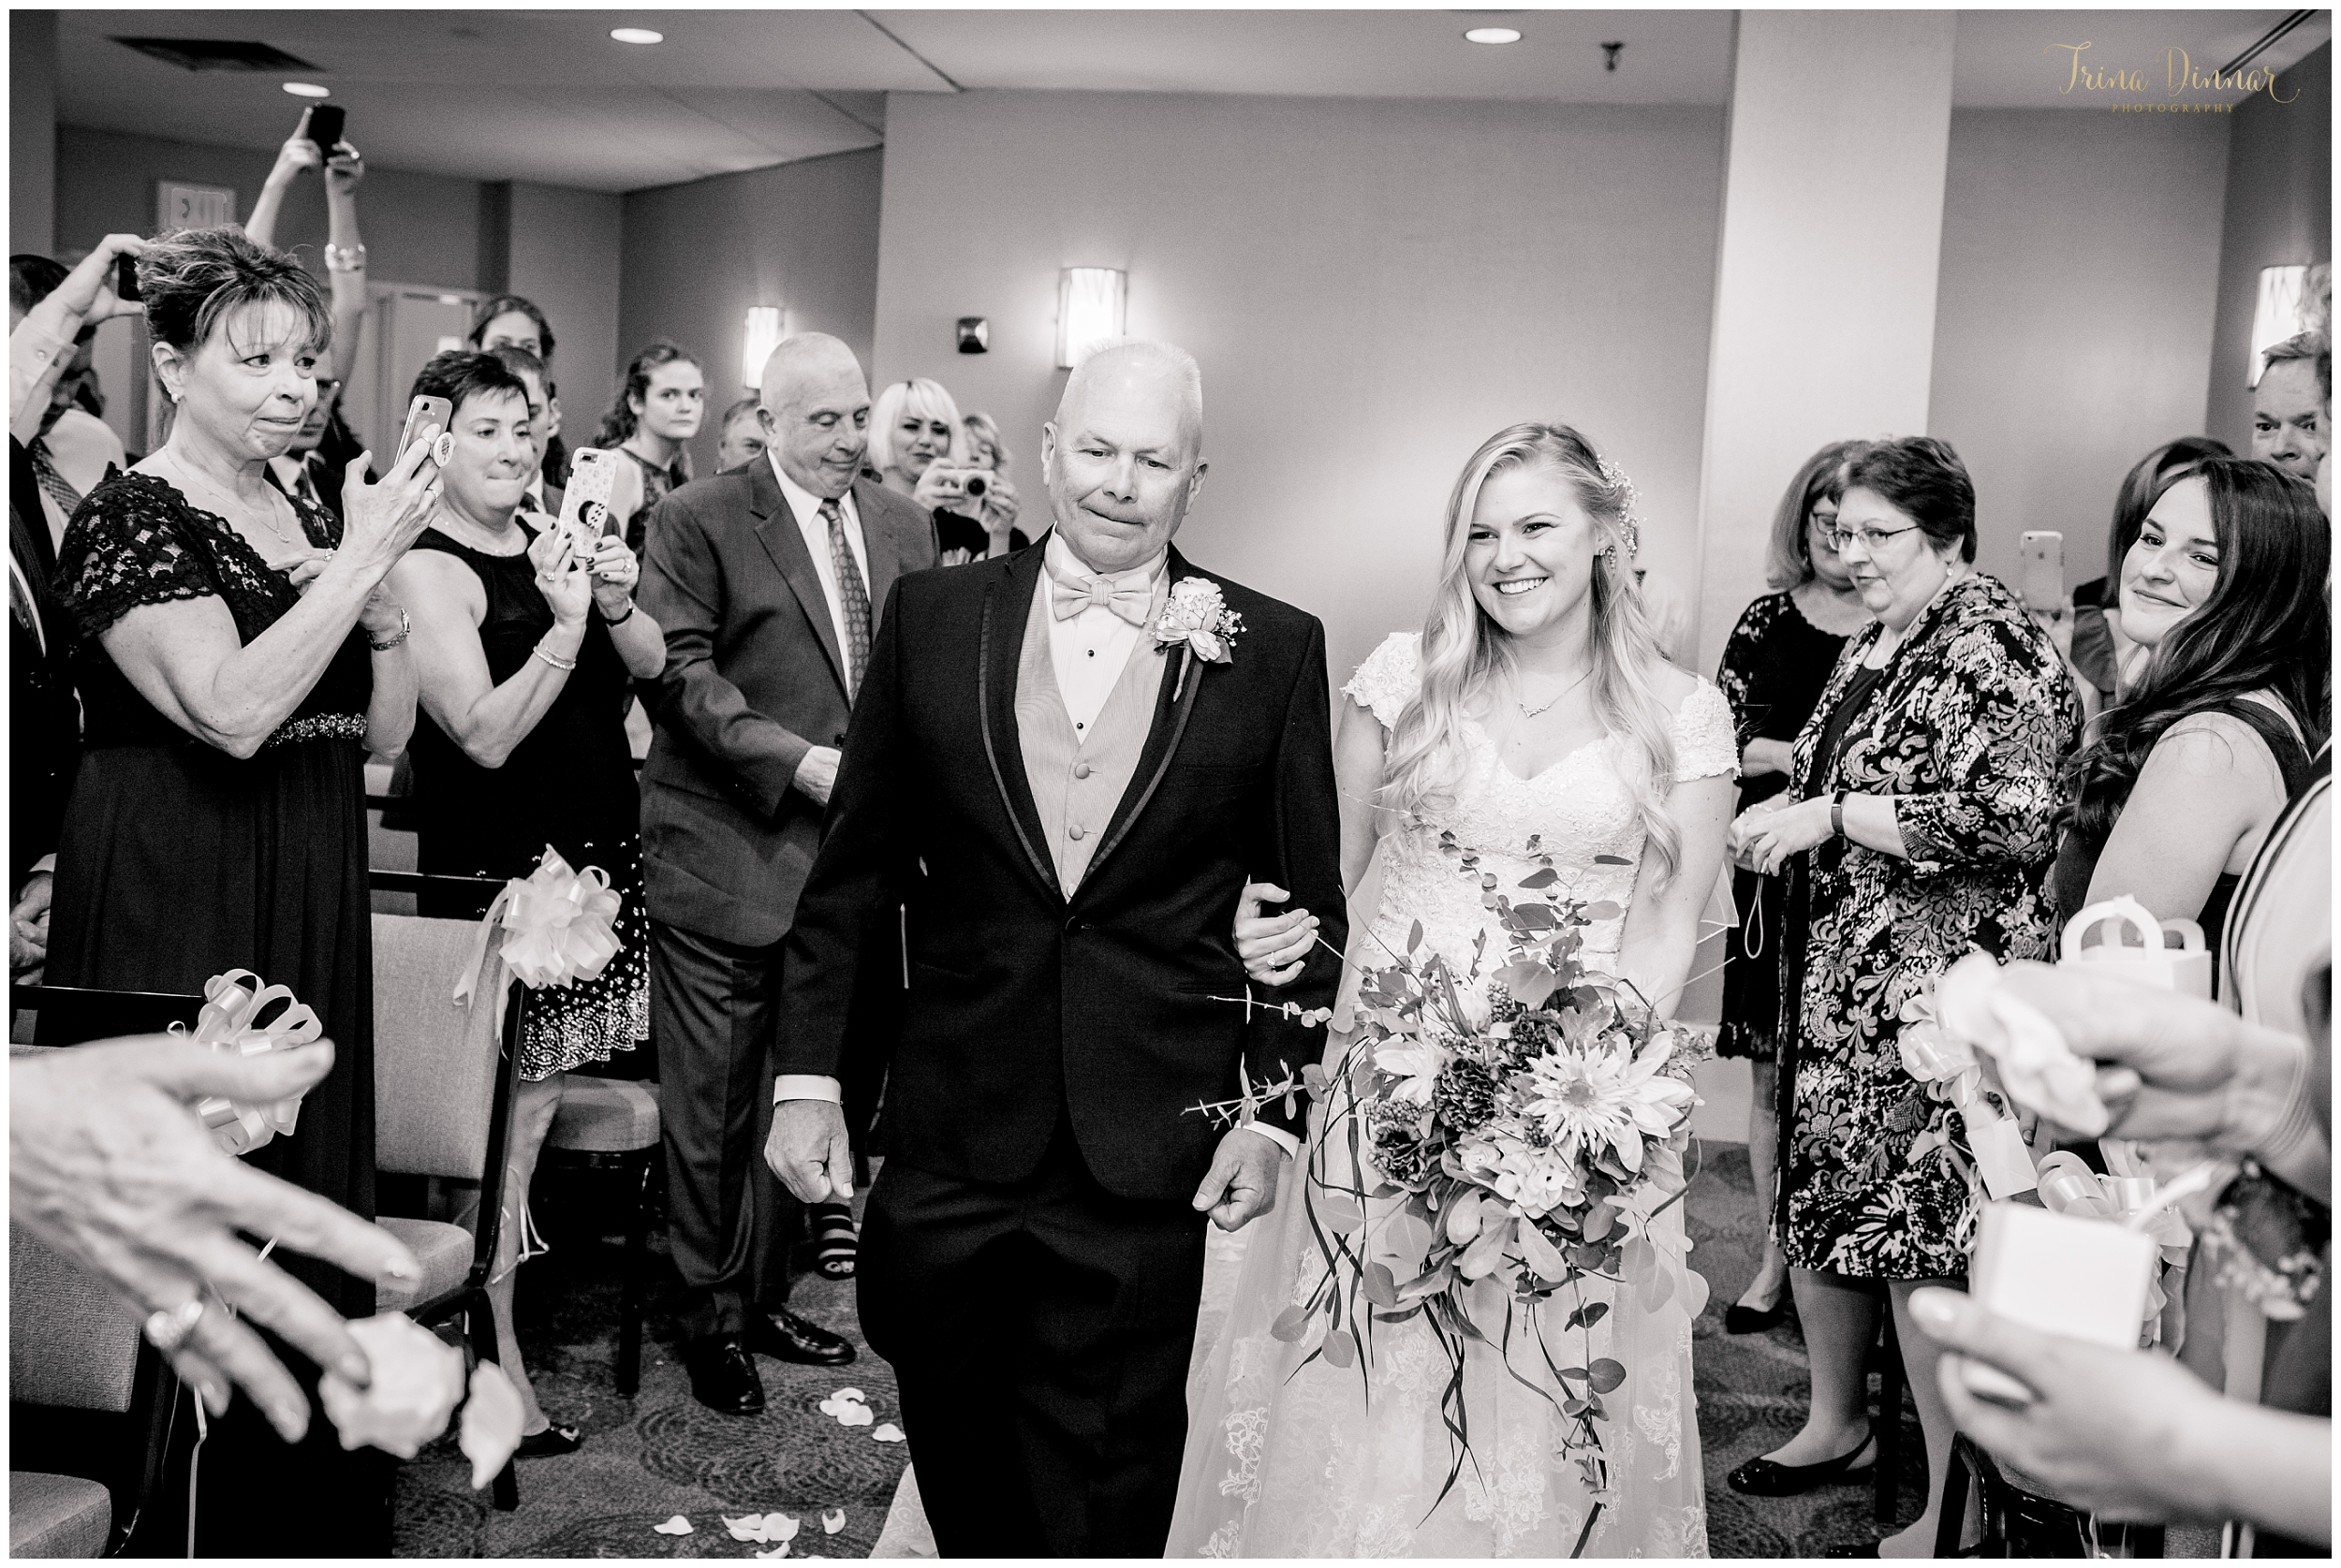 Bride Walking Up Aisle with her Father at the Sheraton Hotel in Portsmouth, New Hampshire.